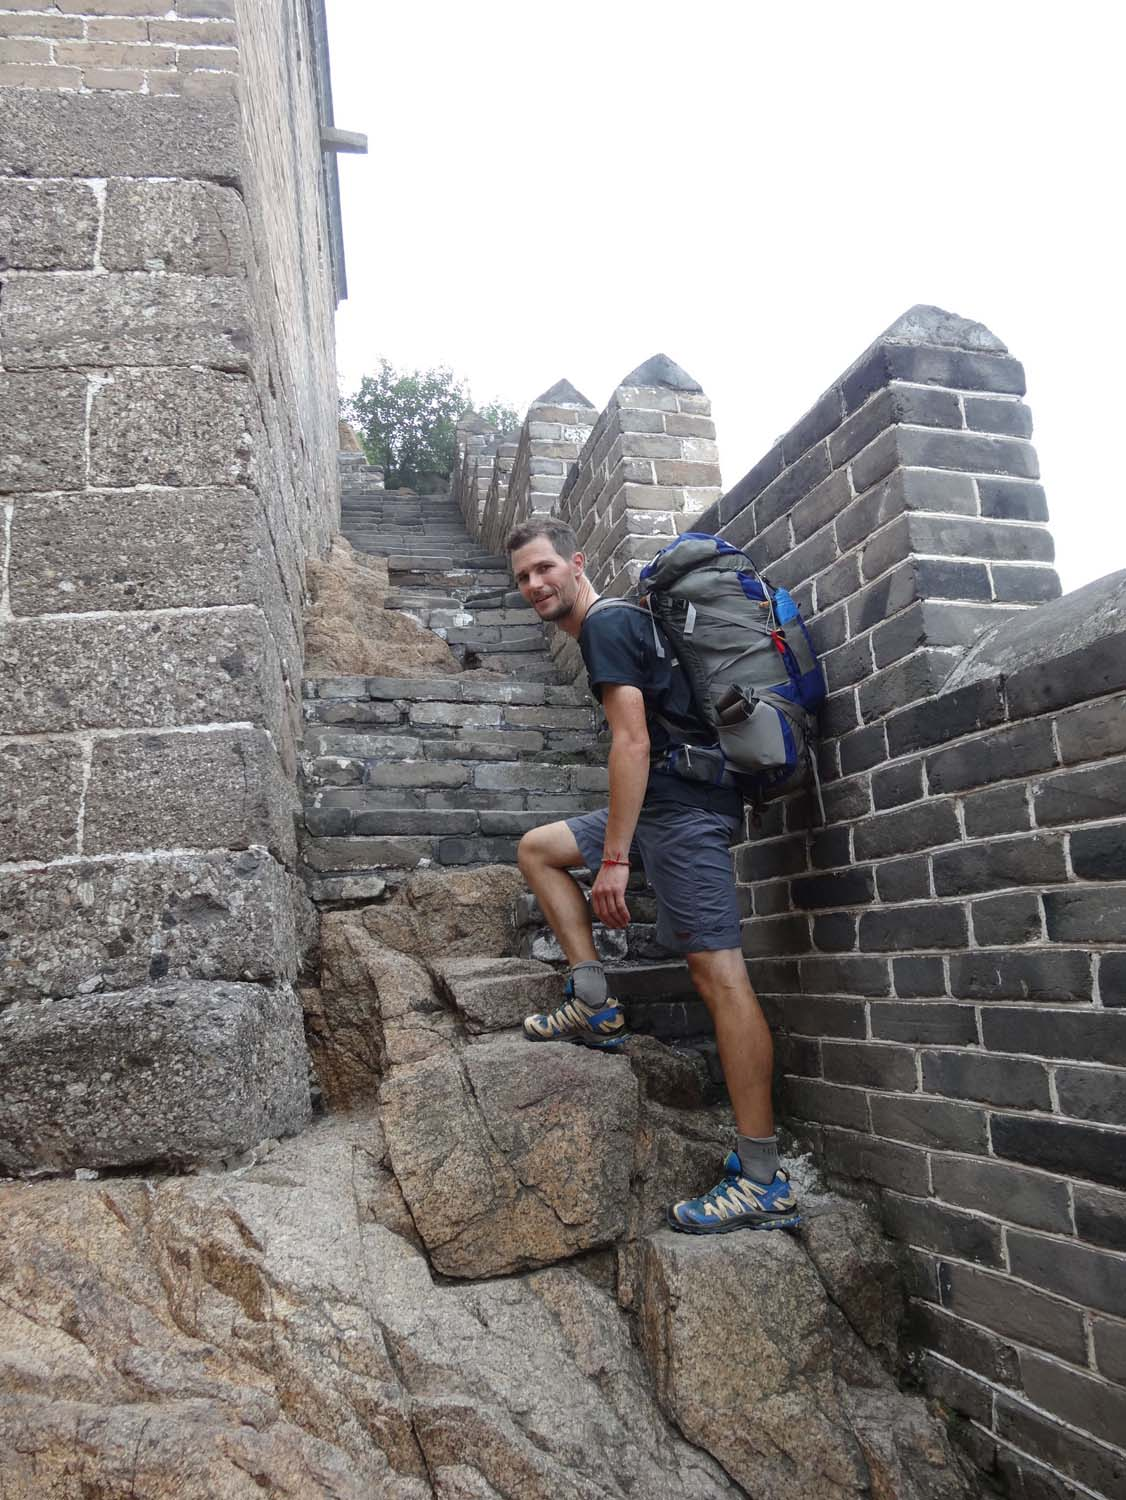 Every step is different on the Great Wall.